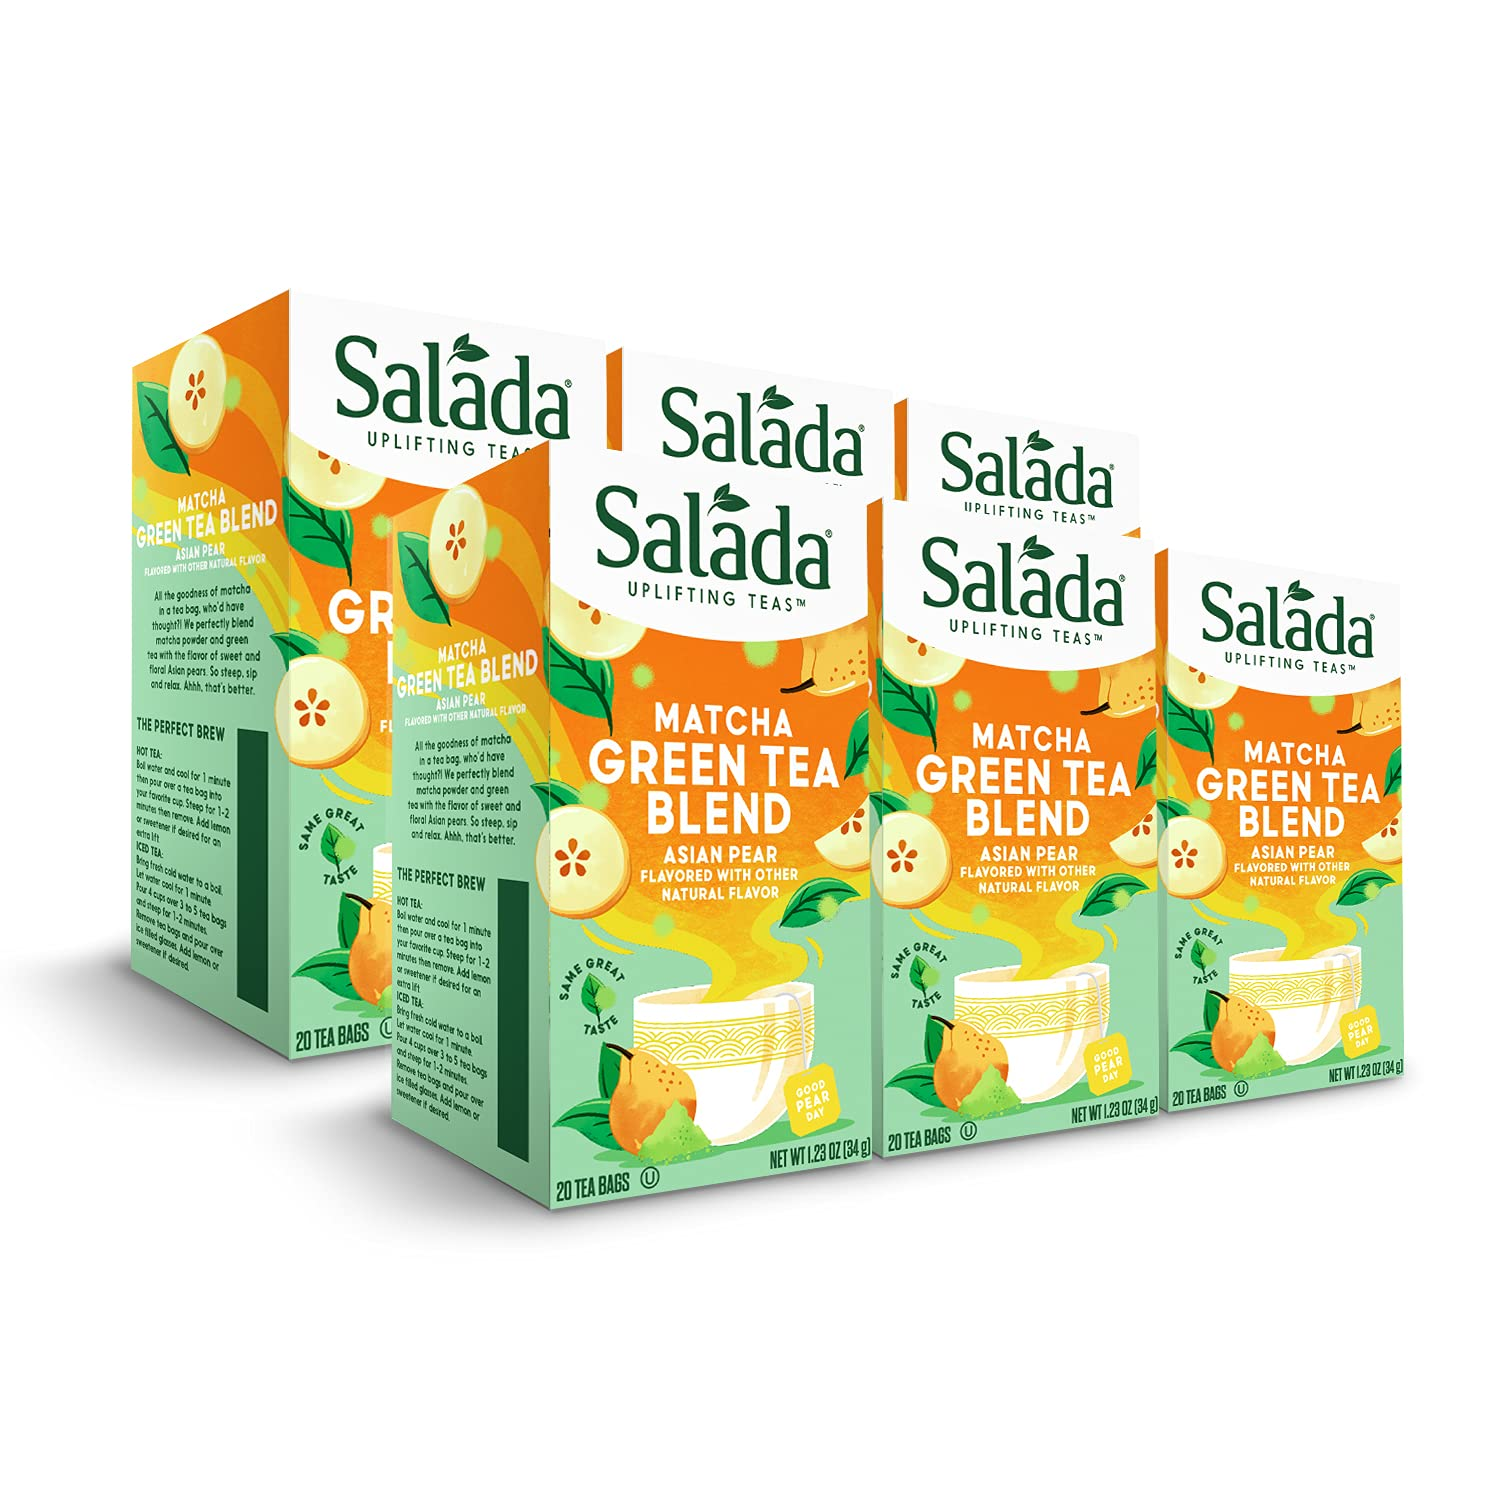 Salada Challenge the lowest price Asian Pear Matcha Green 120 Blend Wrapp Max 72% OFF Tea Individually